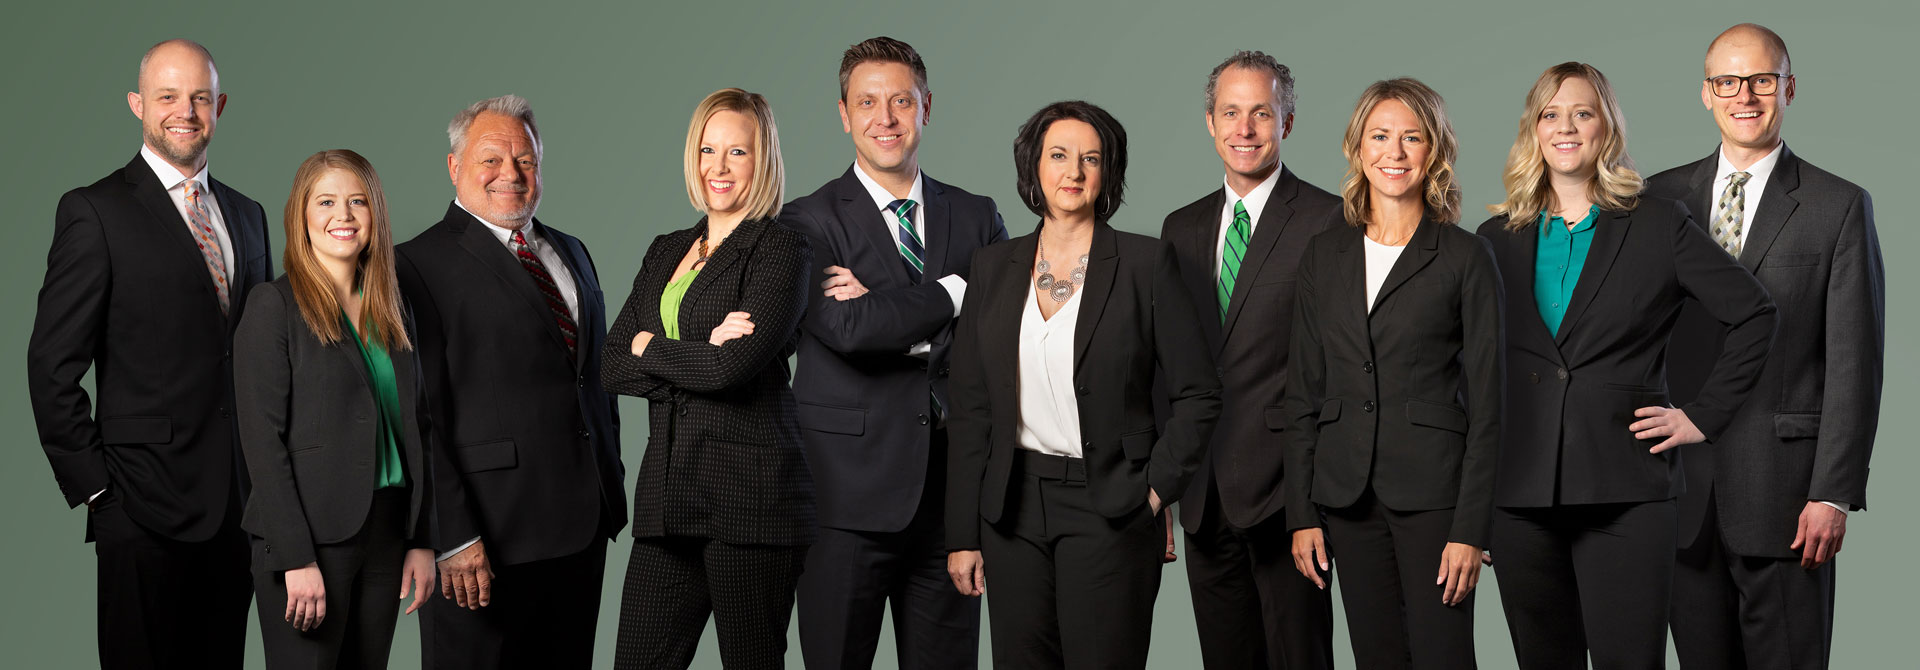 O'Keeffe Attorneys Fargo North Dakota